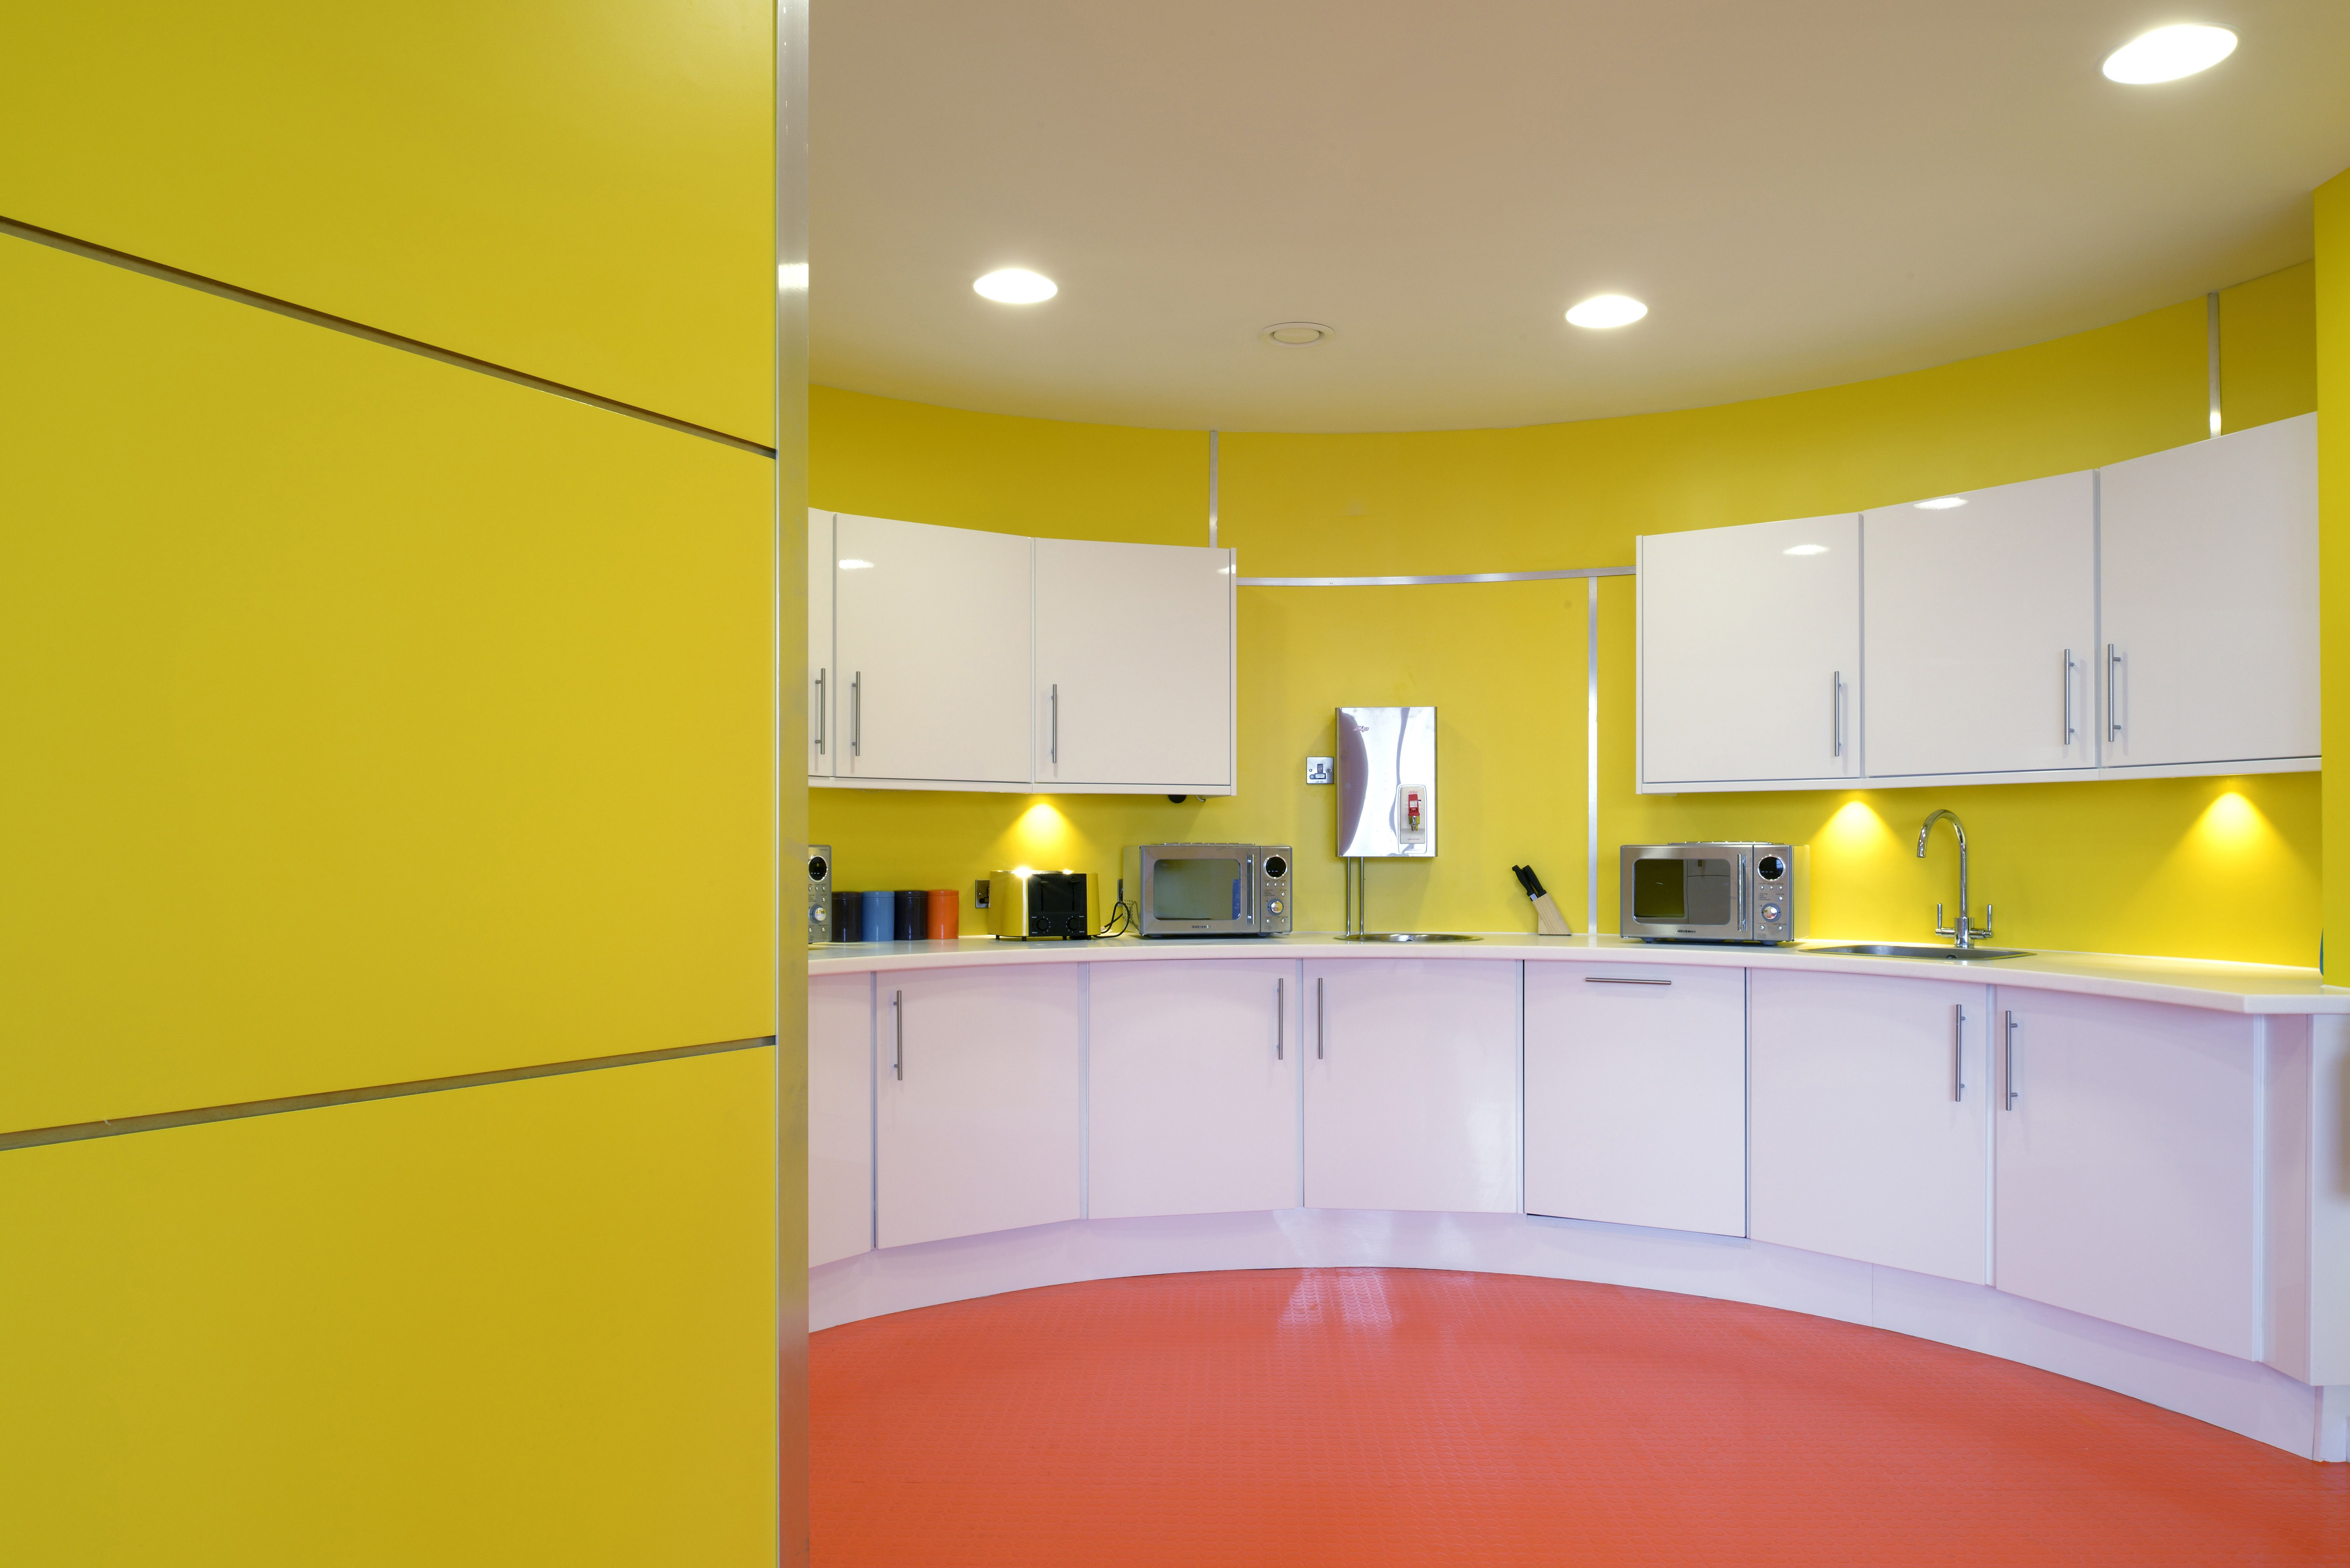 How To Use Shades Of Yellow In Design